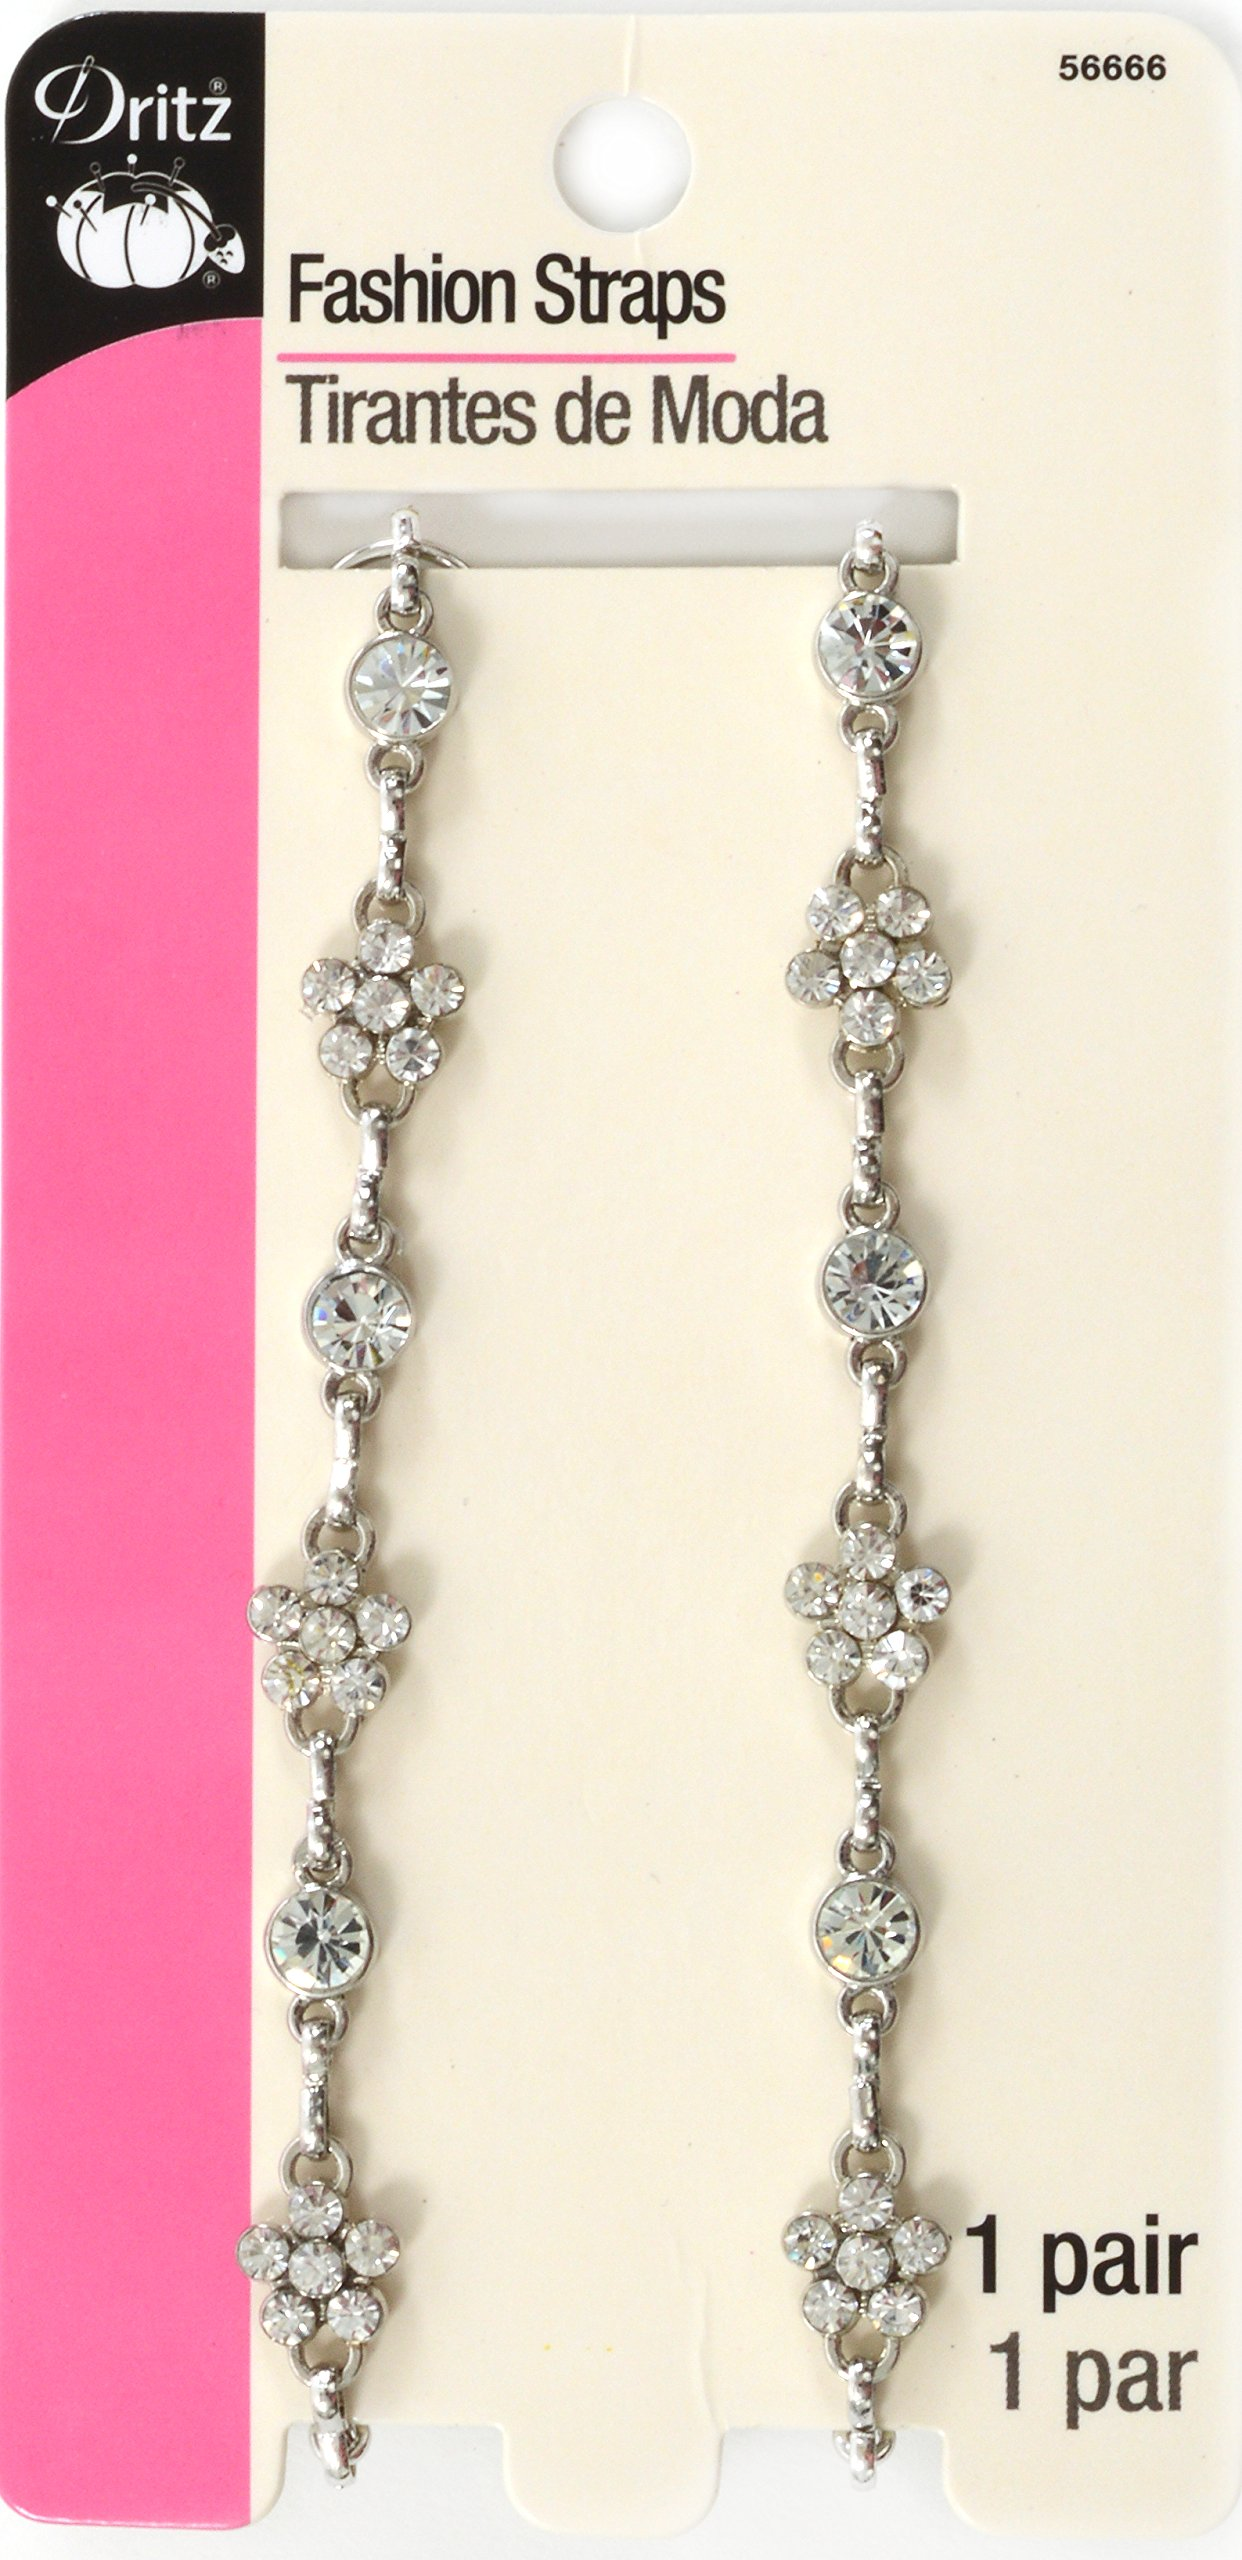 Dritz Detachable & Adjustable Rhinestone Fashion Straps by Dritz